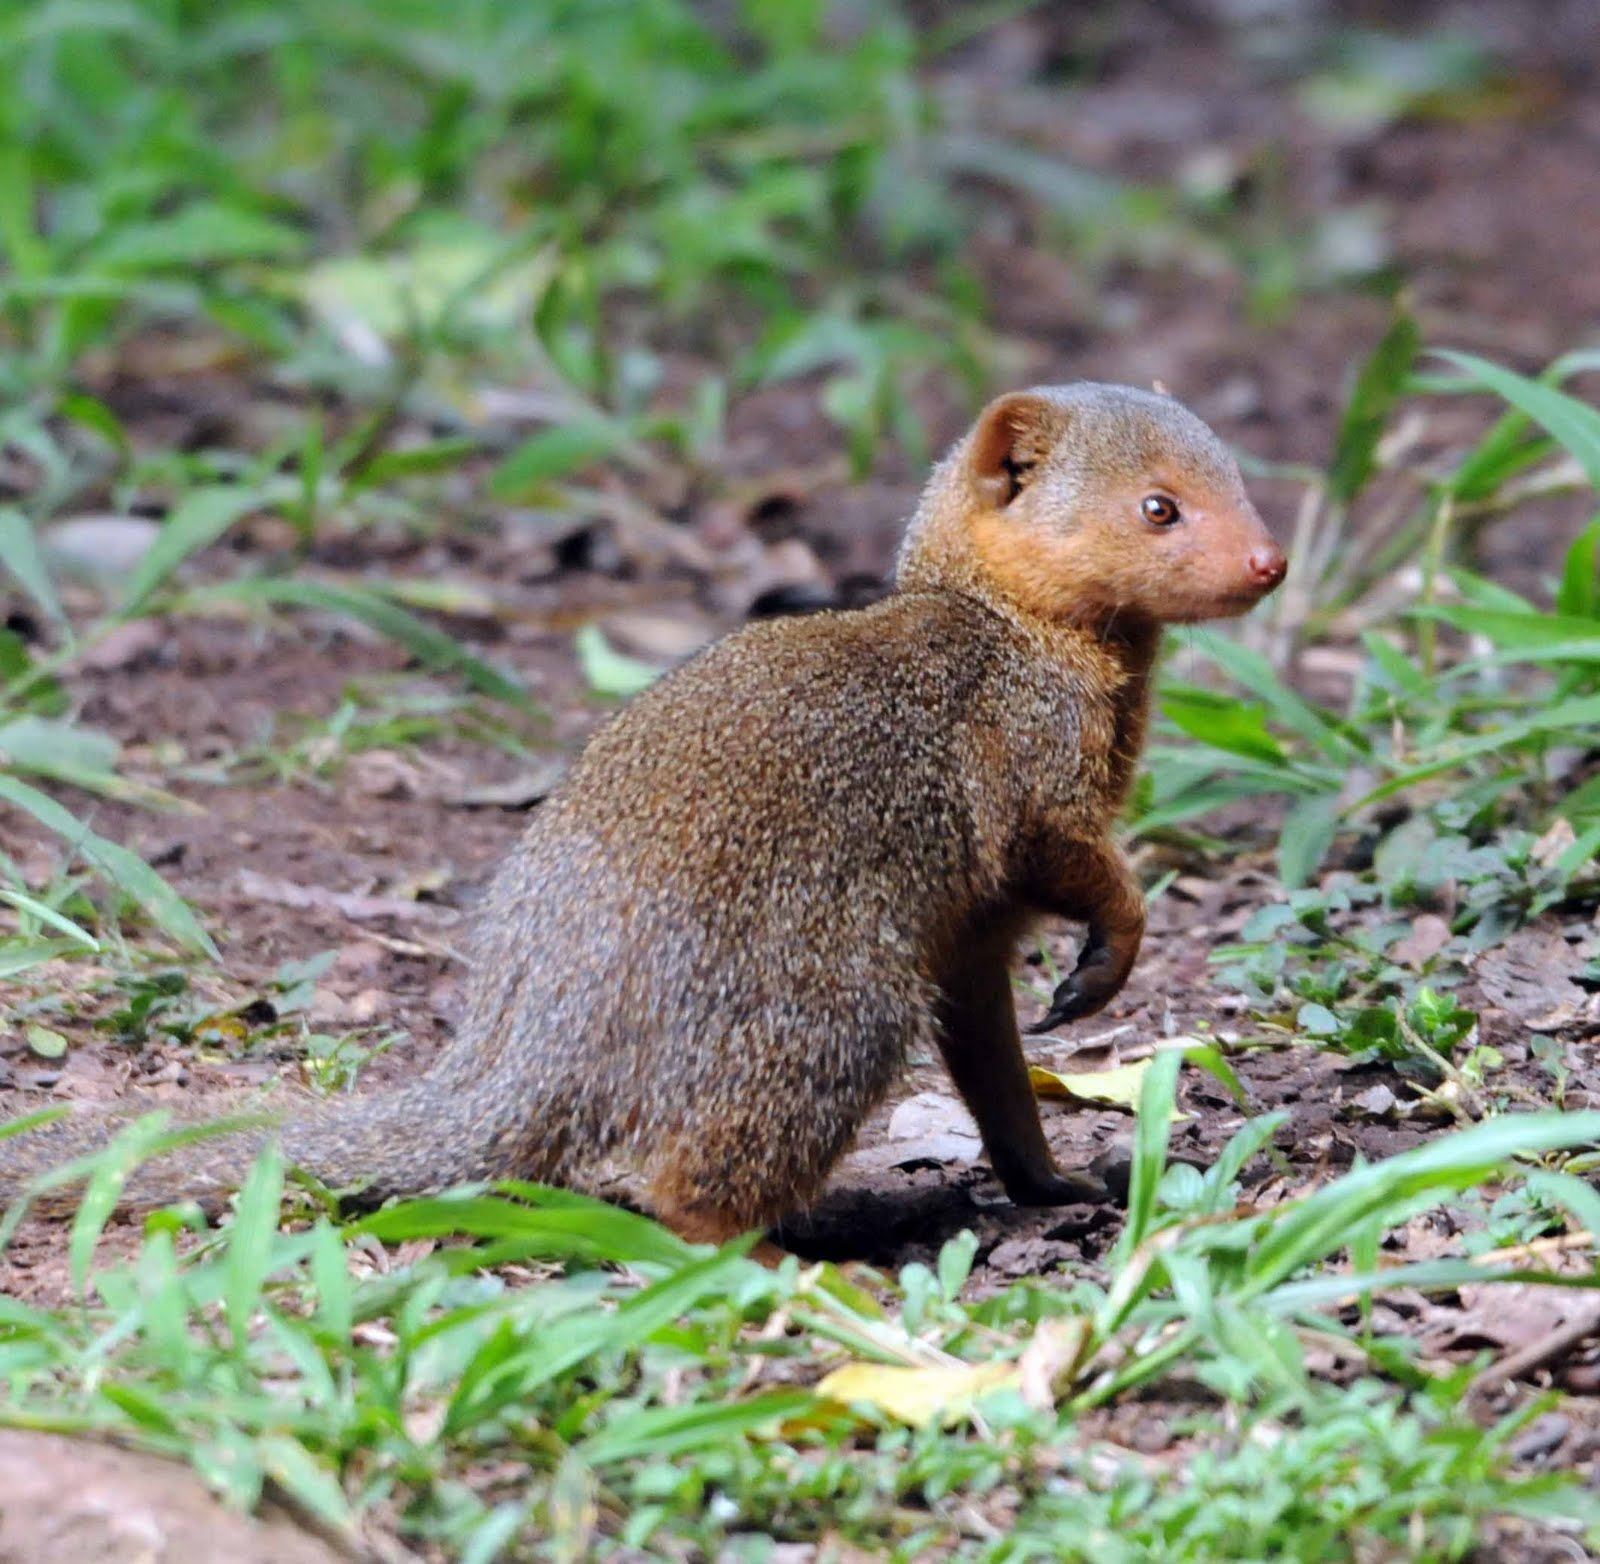 Amaizing Animal Facts: Mongoose pictures world dangerous